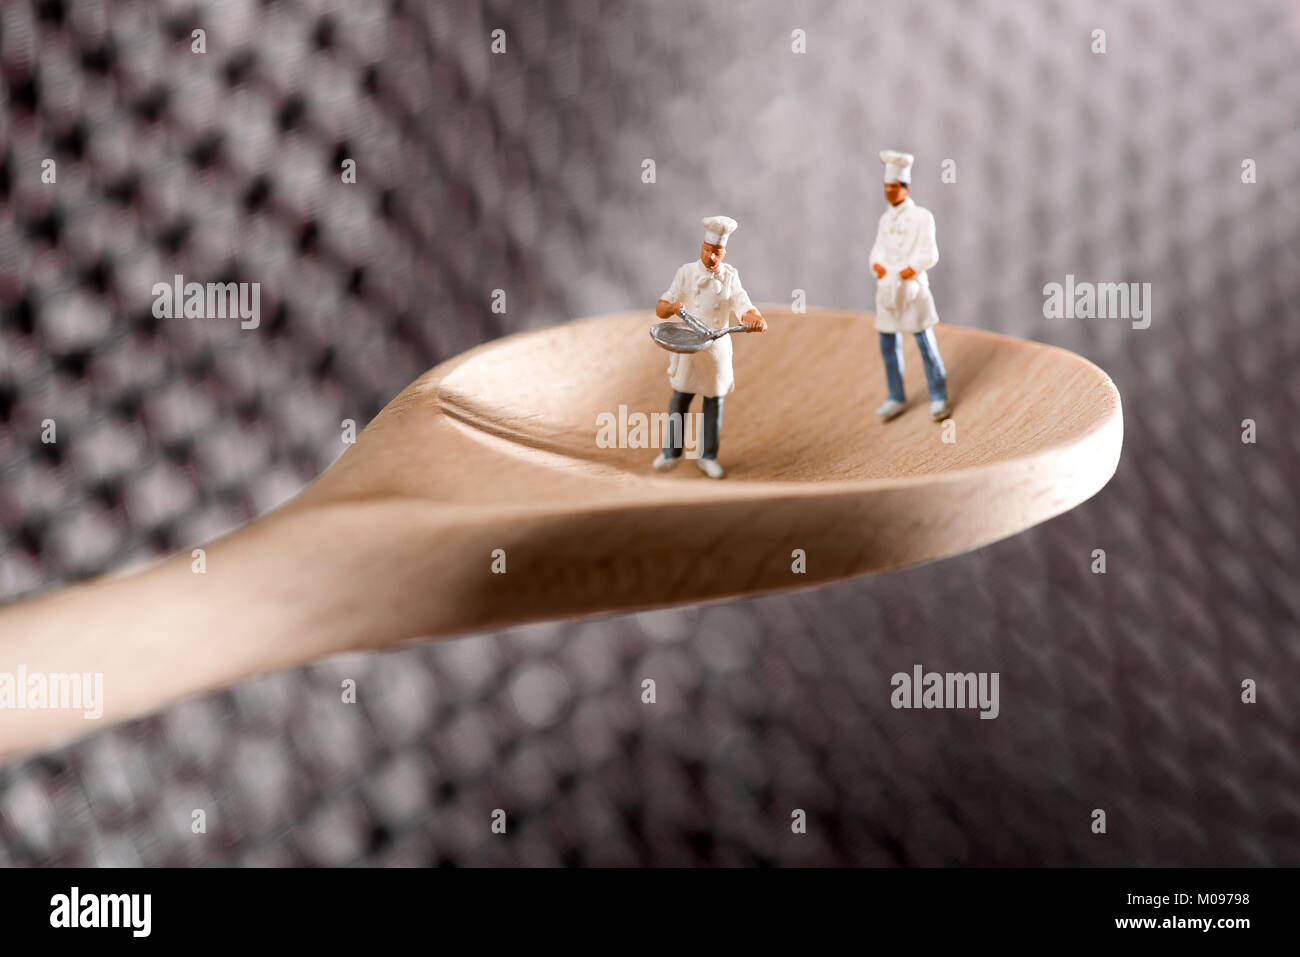 Two miniature figures of chefs or cooks on a wooden spoon over a textured metal background in a concept of catering - Stock Image